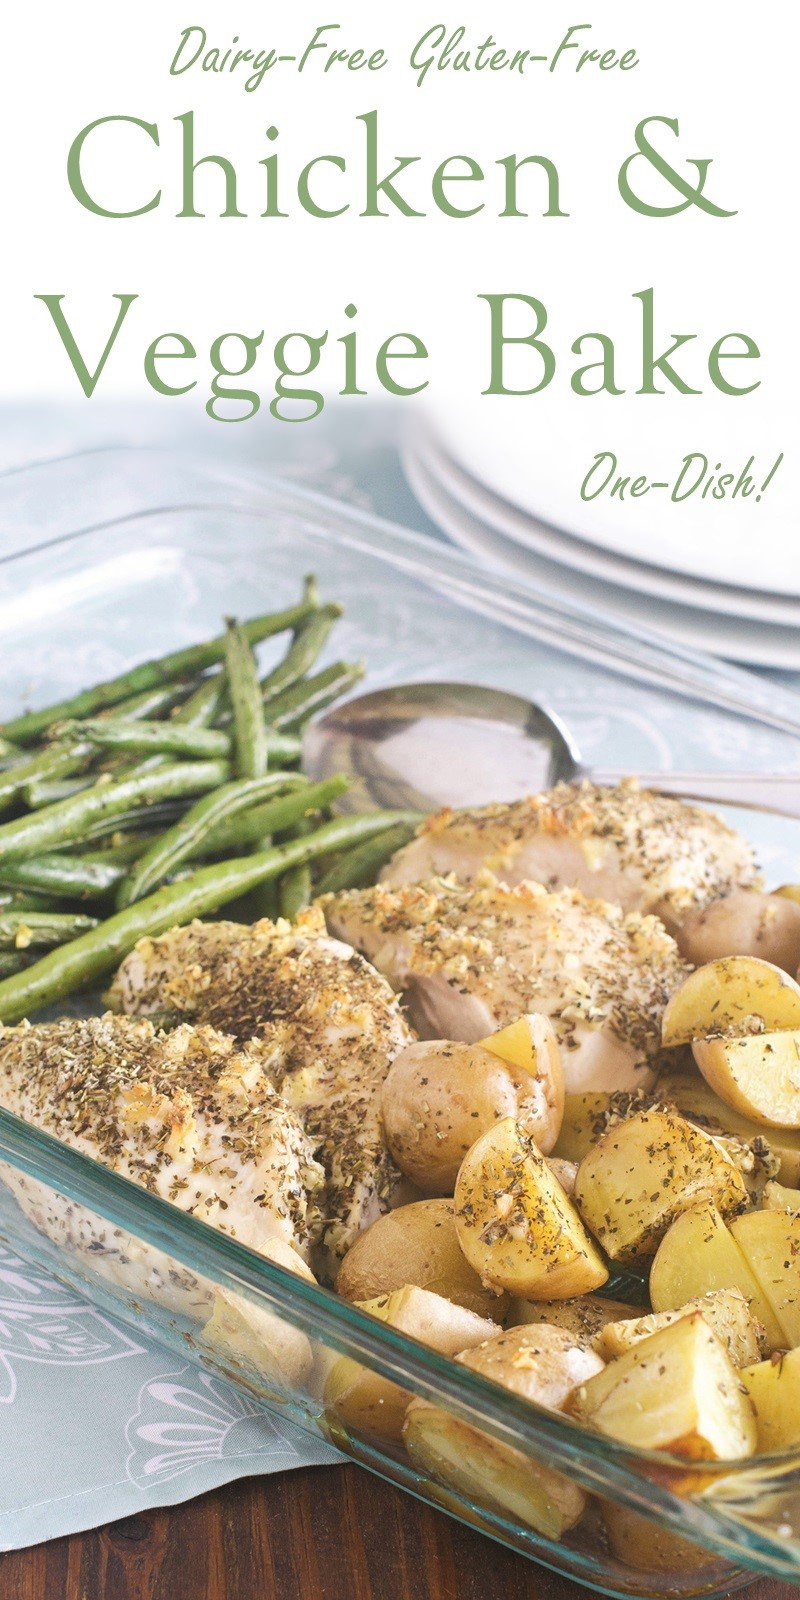 Easy One-Dish Chicken and Veggie Bake